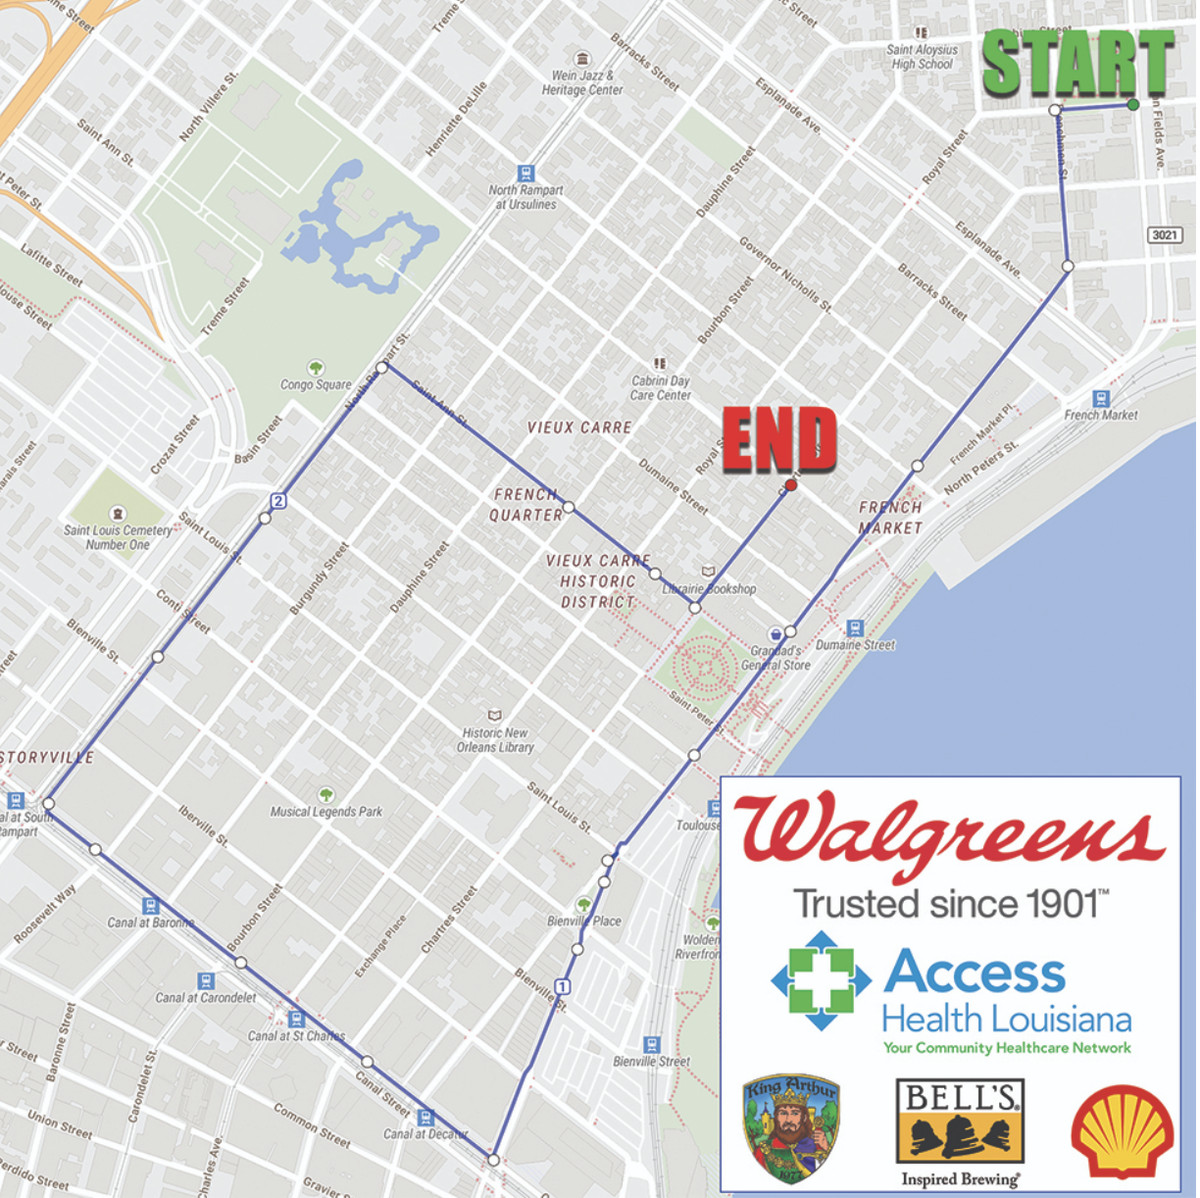 New Orleans Parade Routes Map New Orleans Pride Parade 2019: route and street closures   Curbed